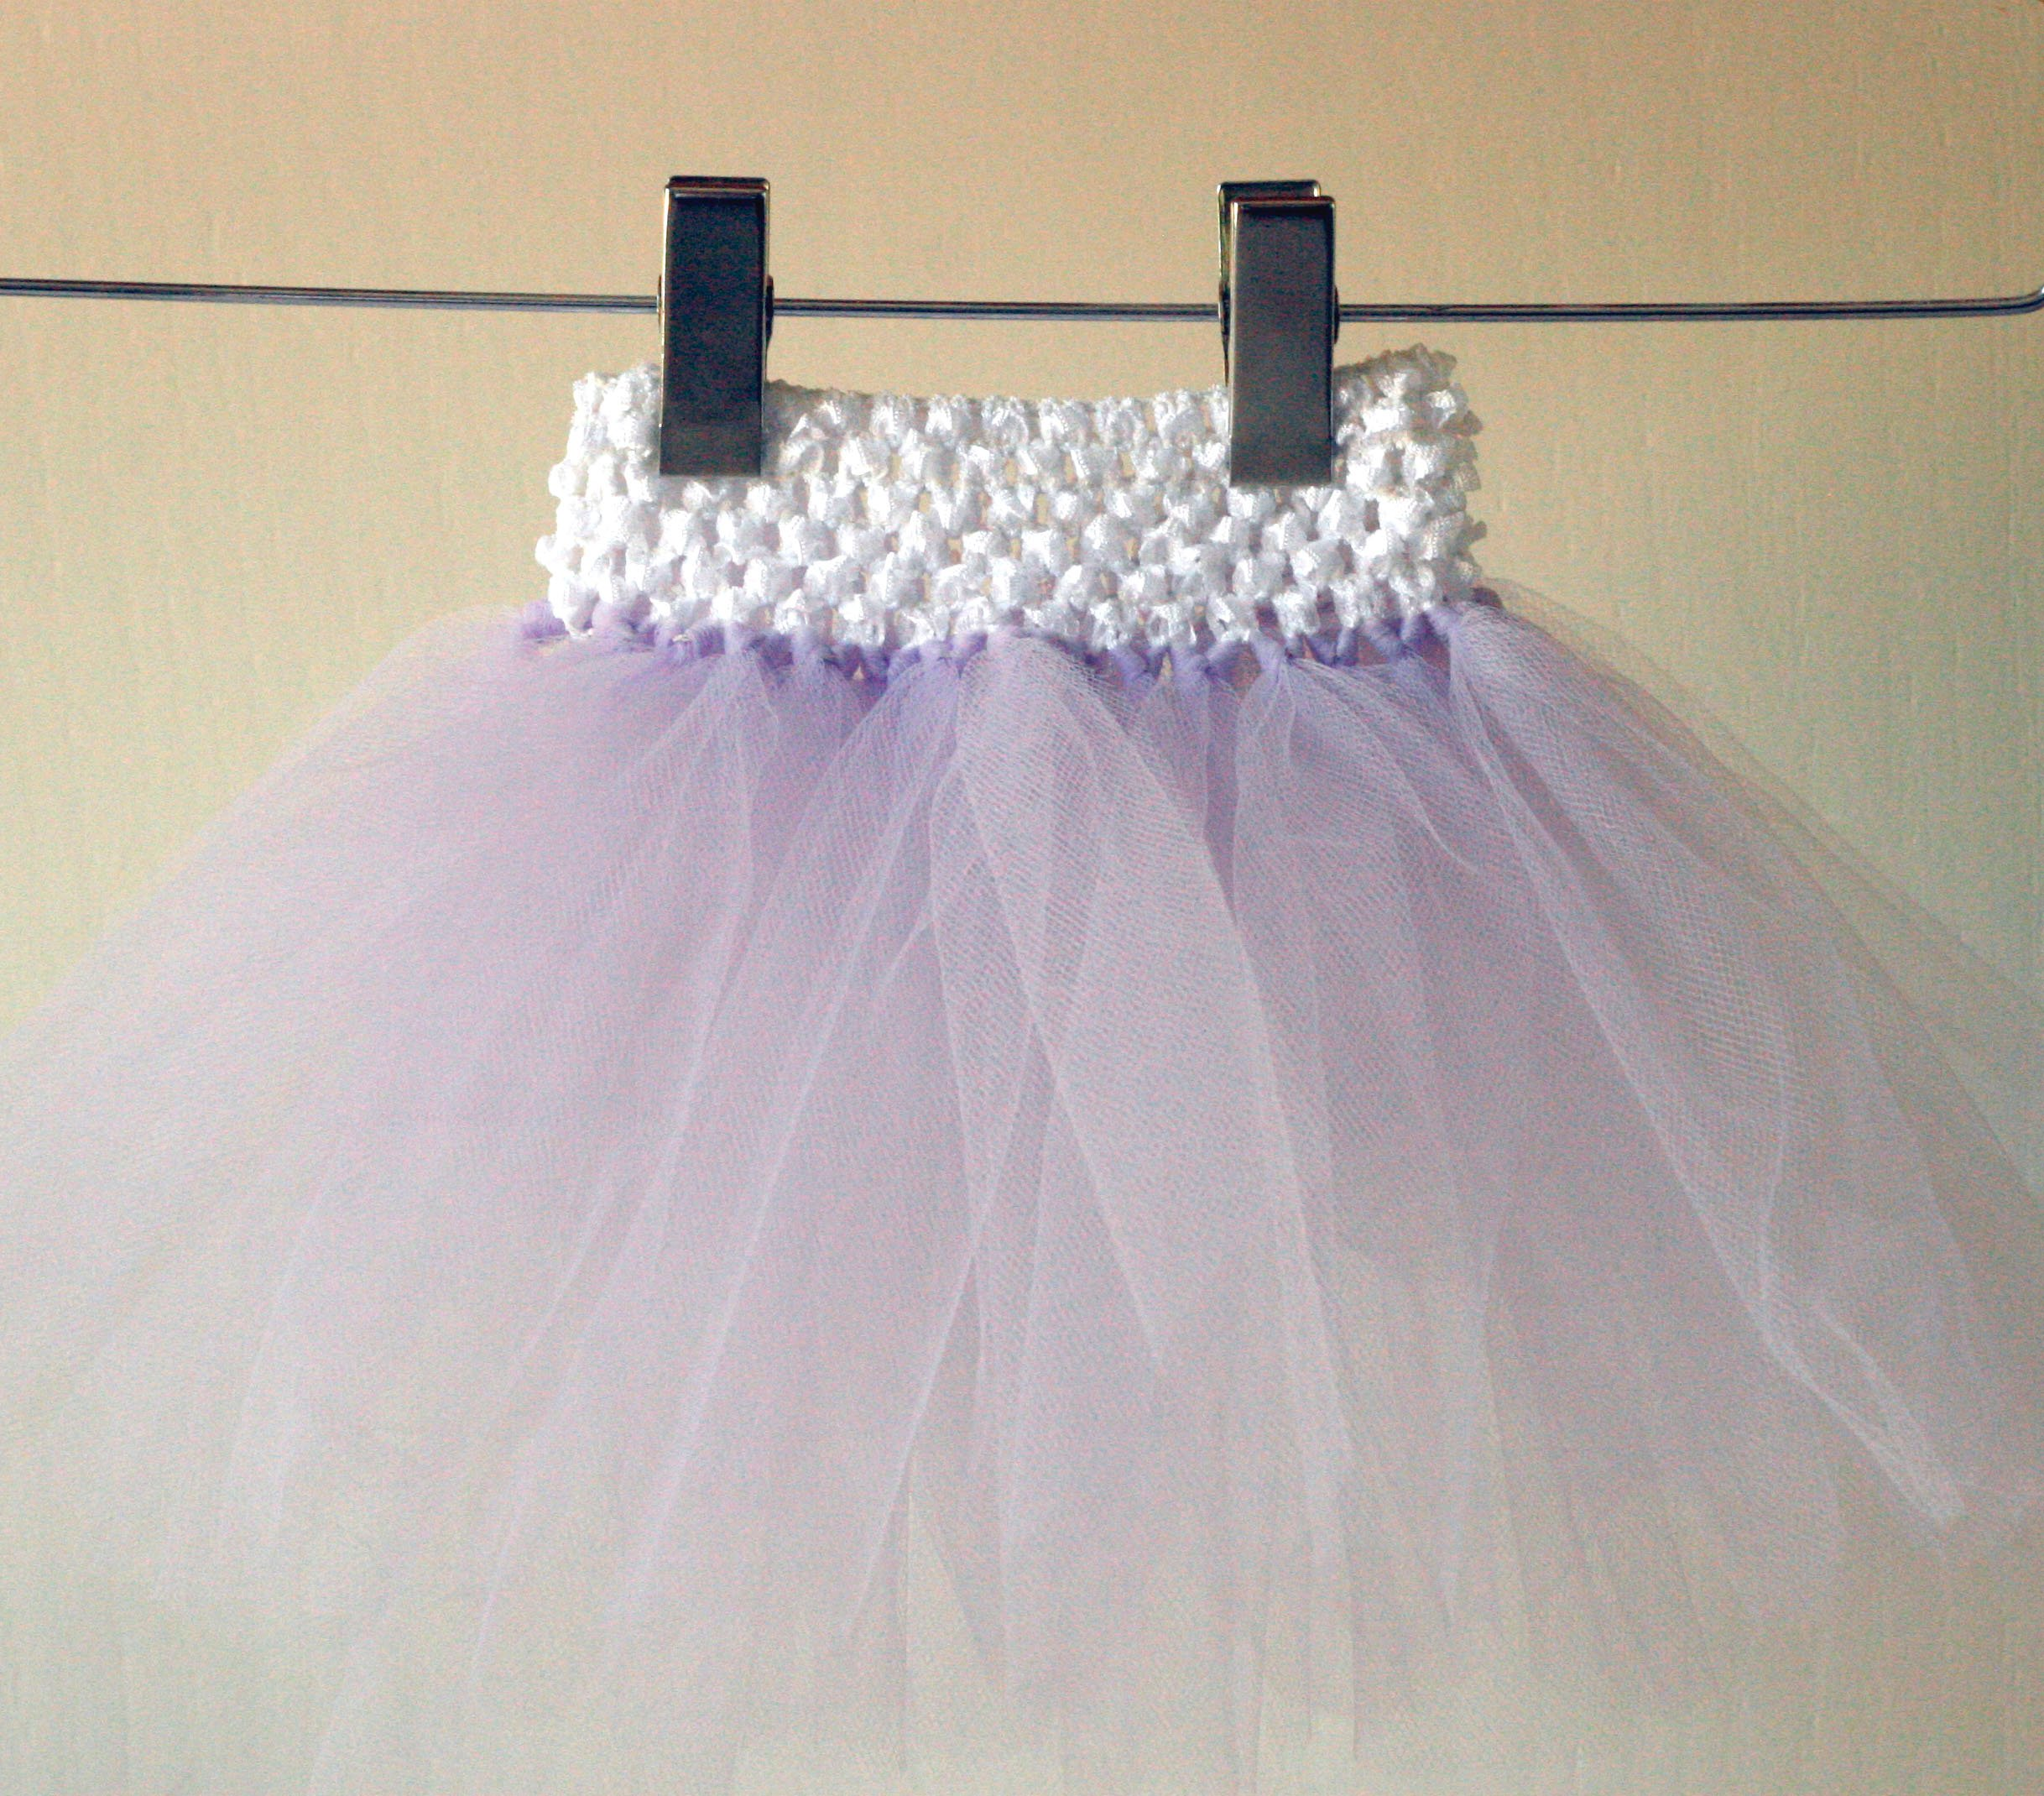 Make Sew Tutu Diys Guide Patterns